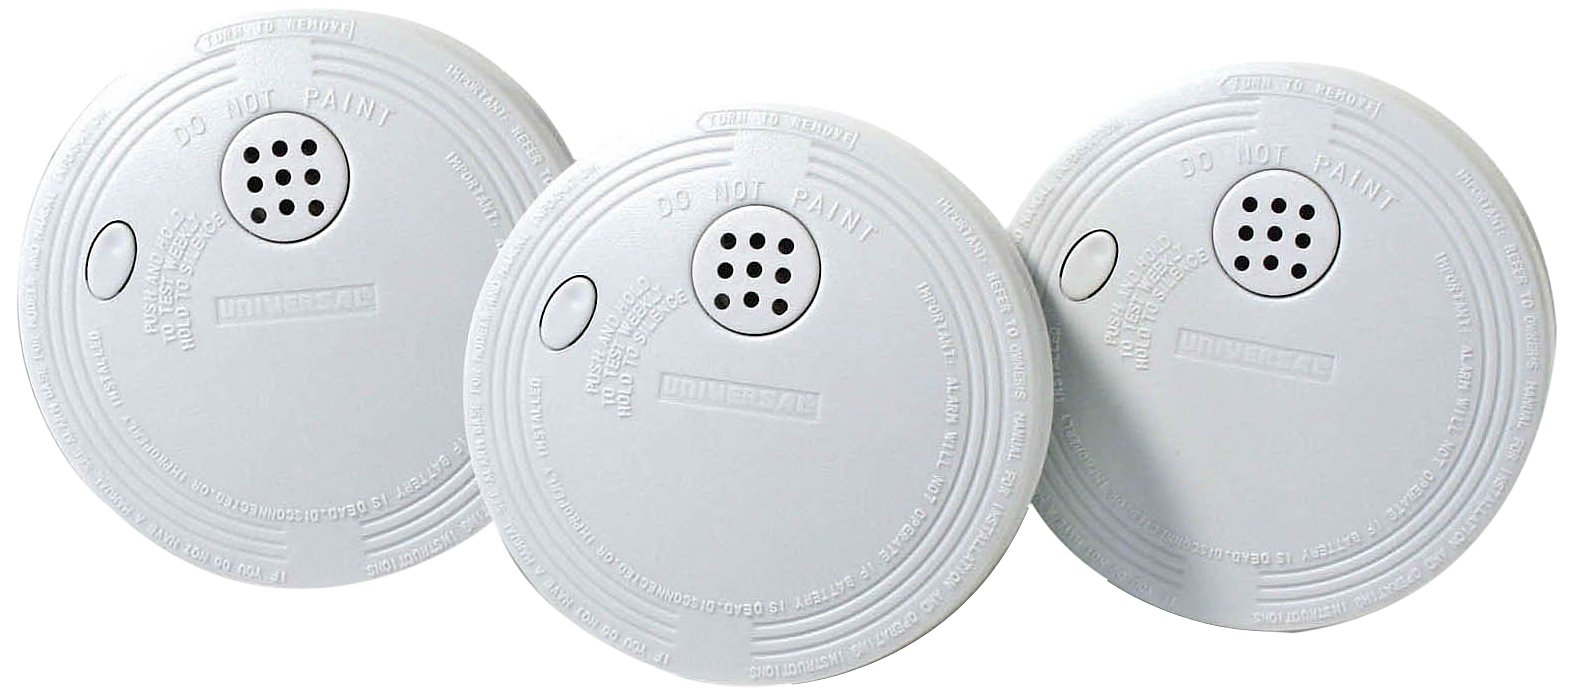 Universal Security Instruments SS-770-3P Battery Powered Ionization Smoke and Fire Alarm, 3-Pack by Universal Security Instruments